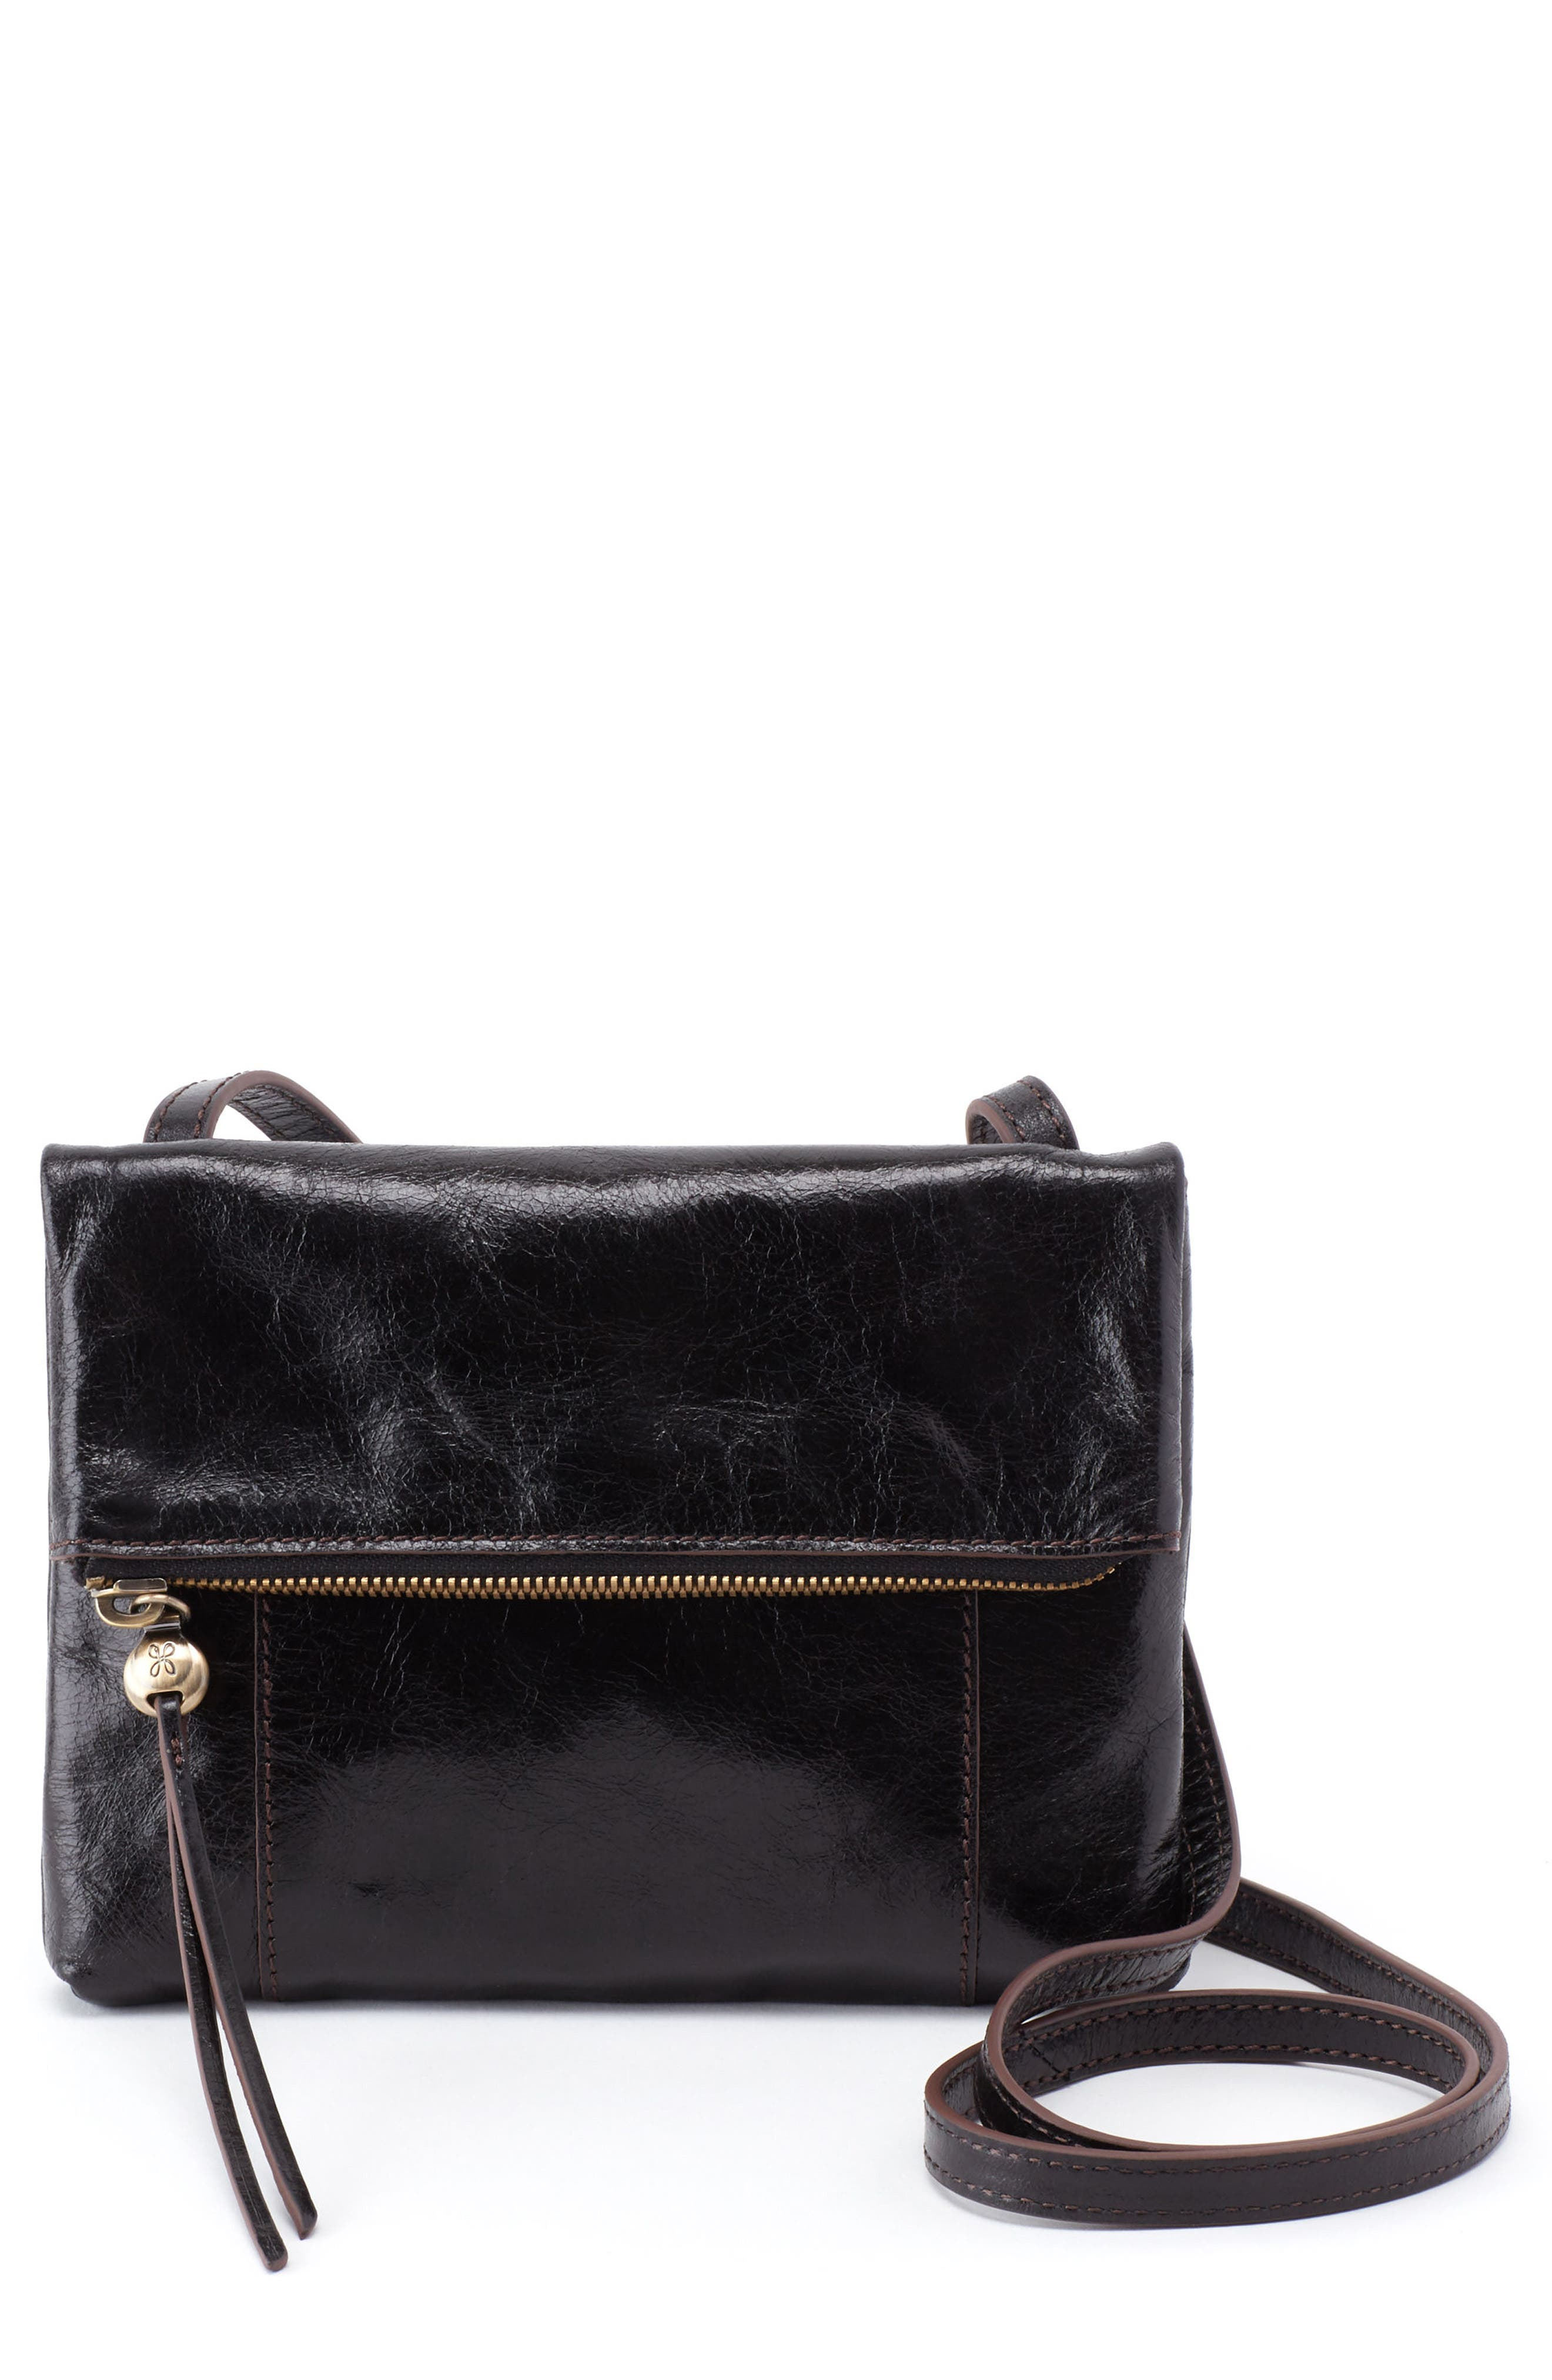 Sparrow Foldover Crossbody Bag,                         Main,                         color, BLACK